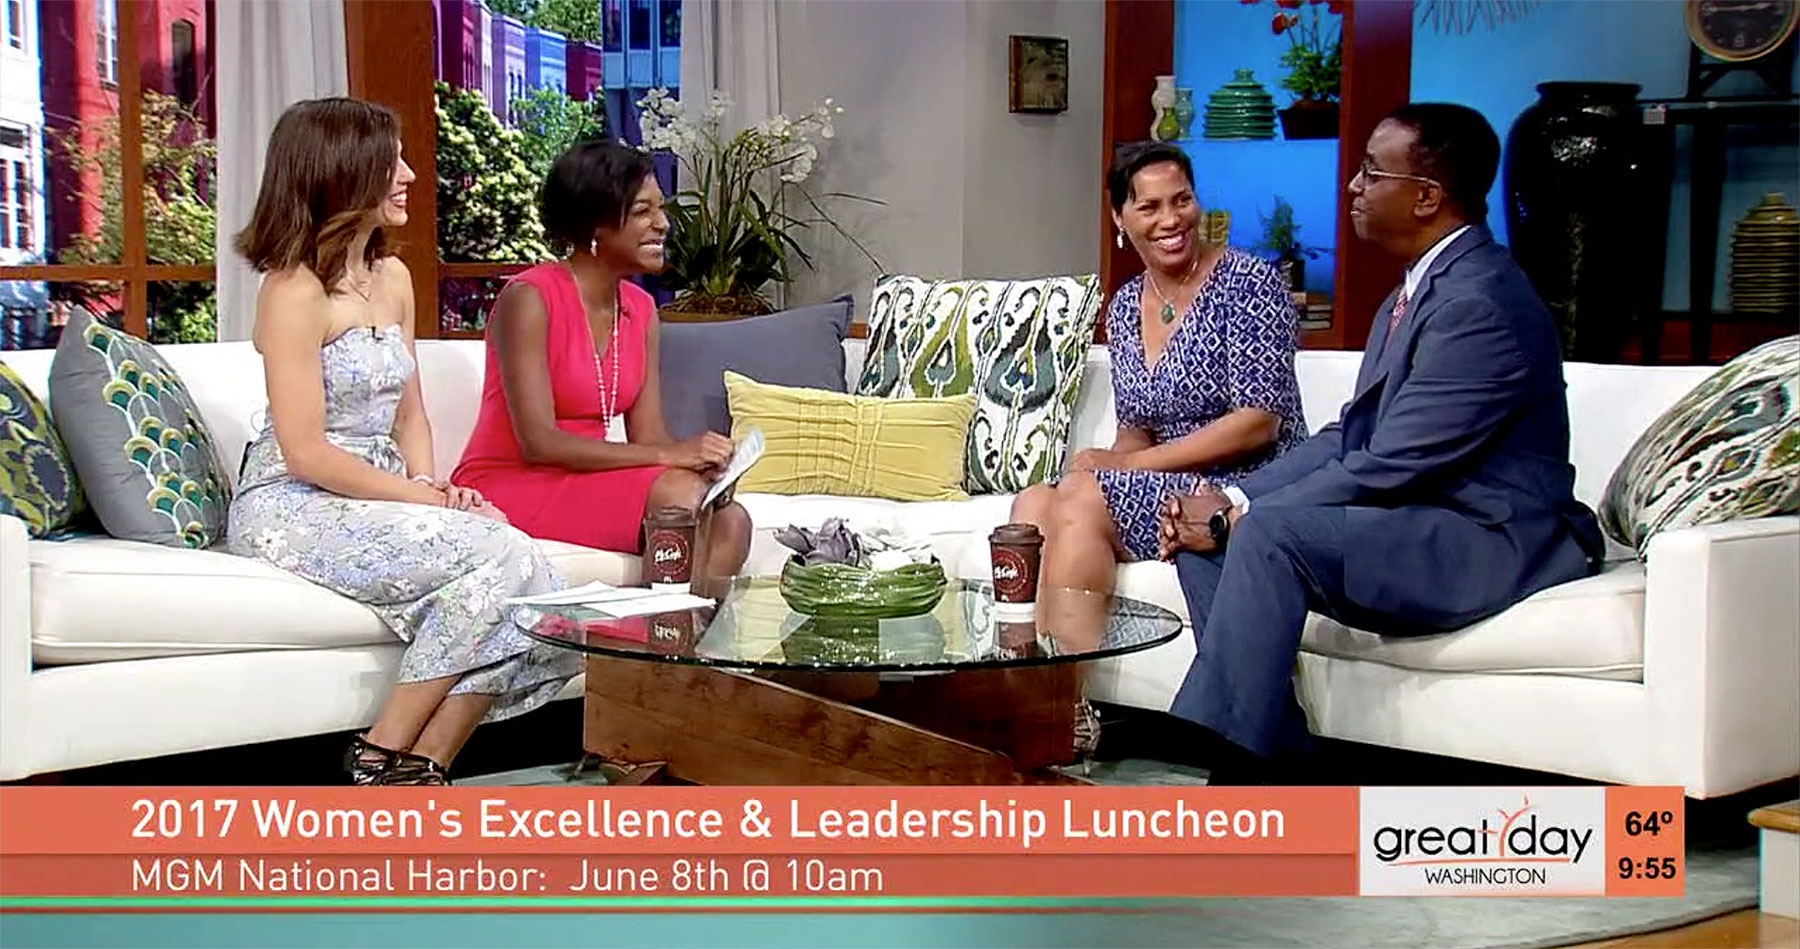 Prince George's Women's Excellence & Leadership Luncheon Interview WUSA 9 (Washington, DC)